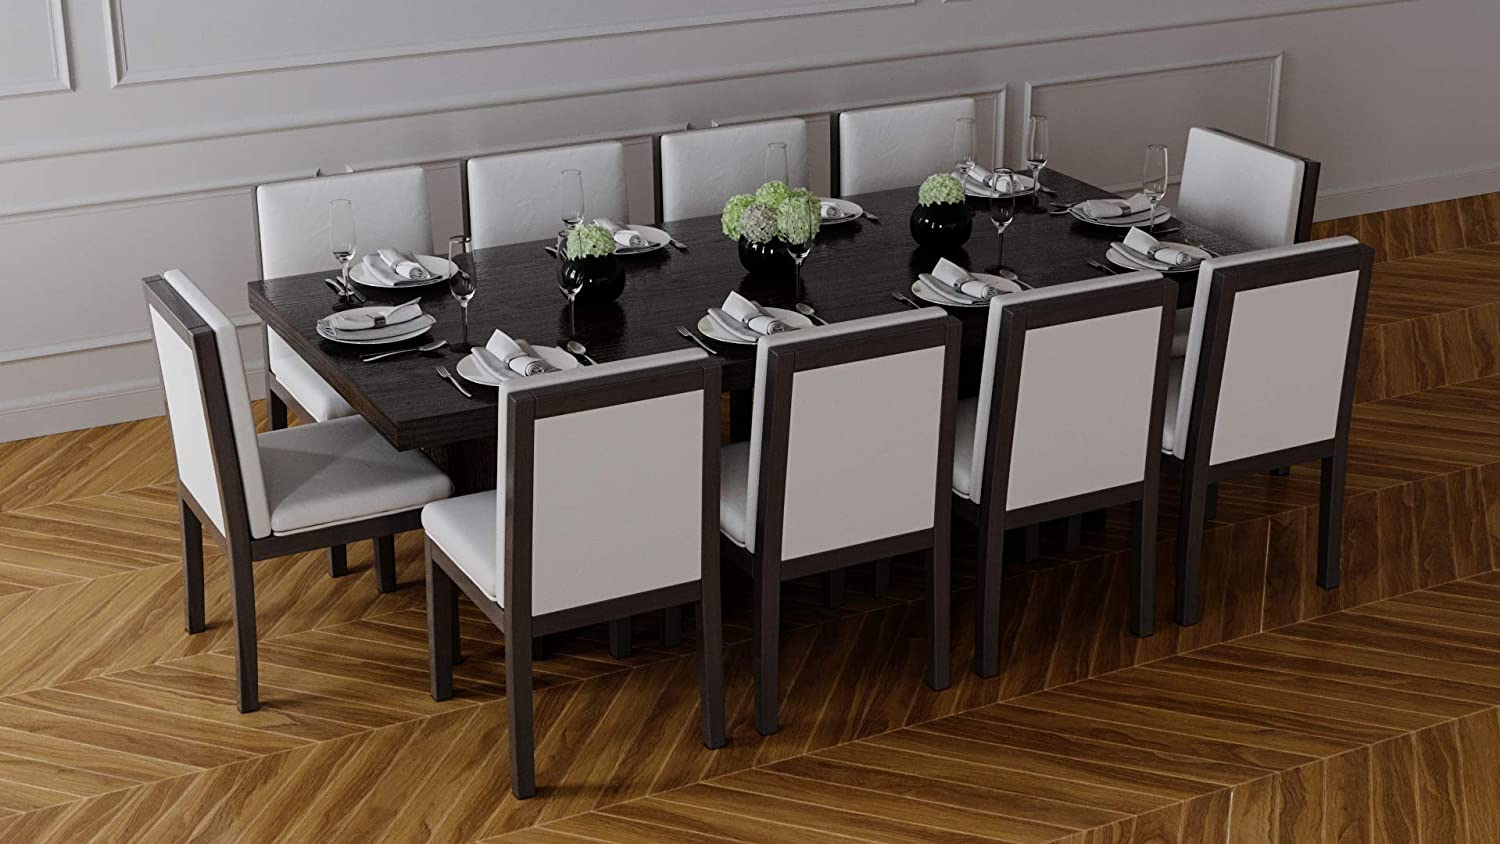 Chicomo Sorrento Dining Set with 9 Chairs, Dining Table and 9 ...